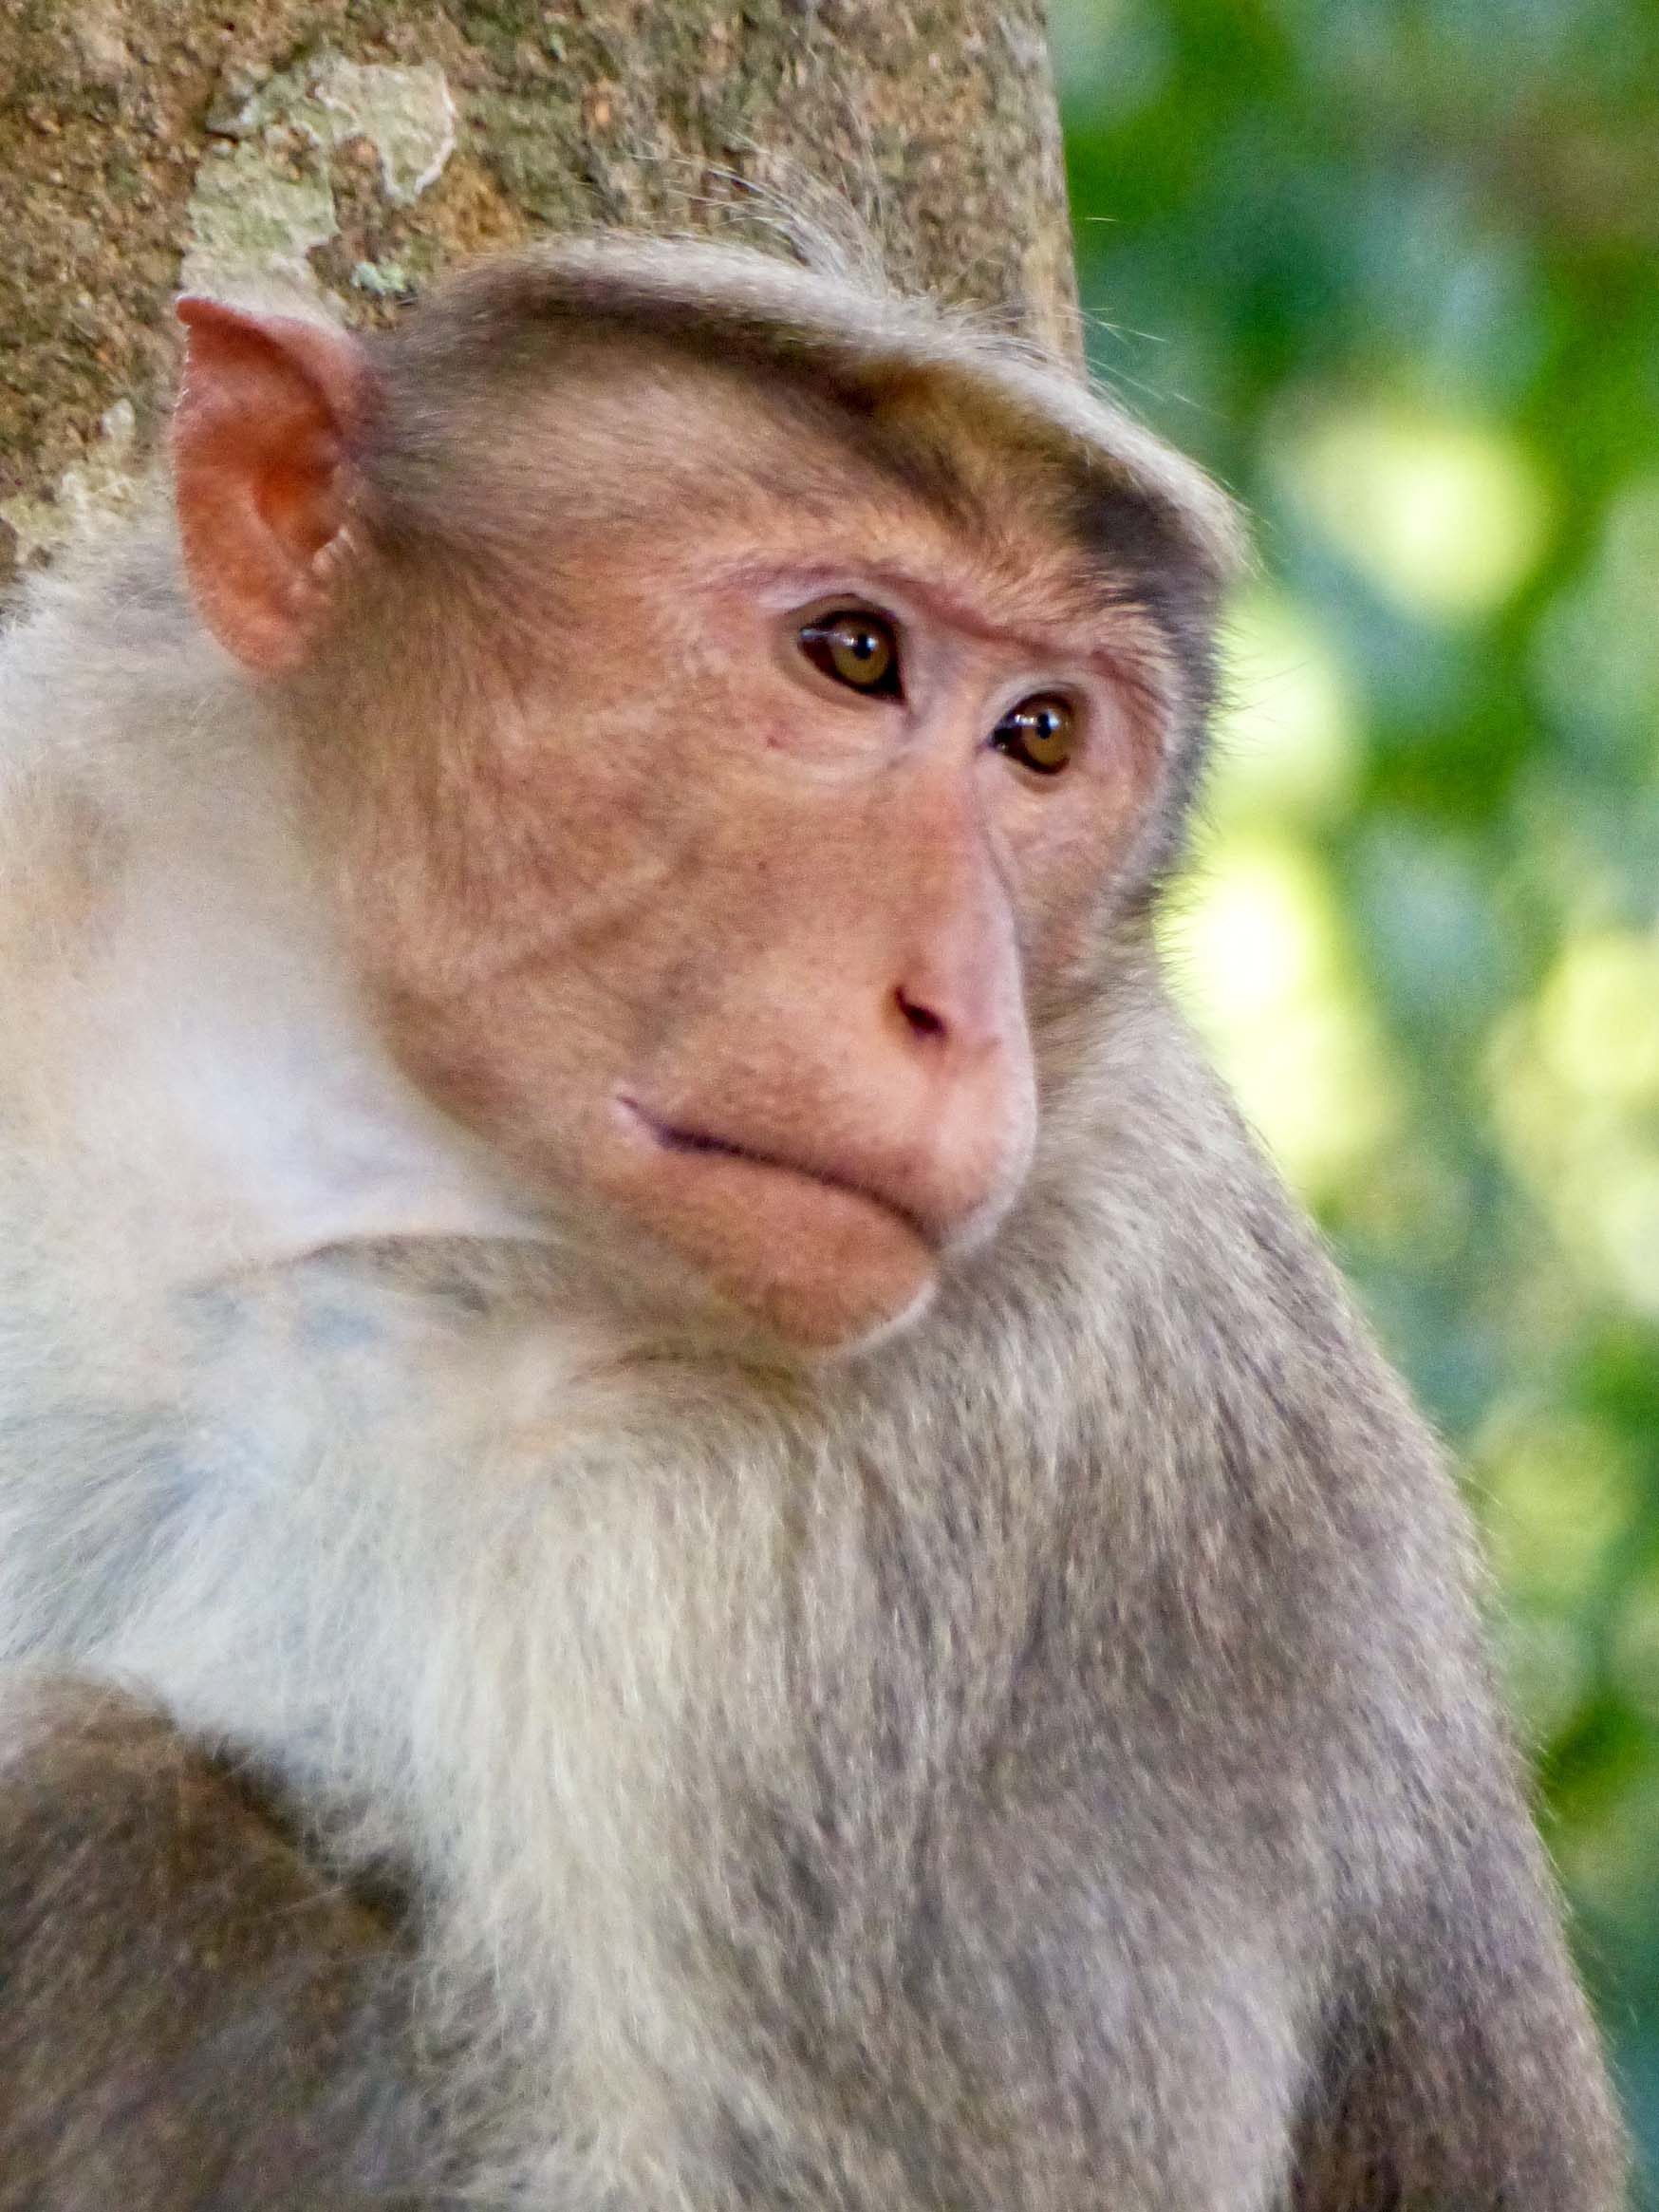 Head and shoulders shot of a monkey